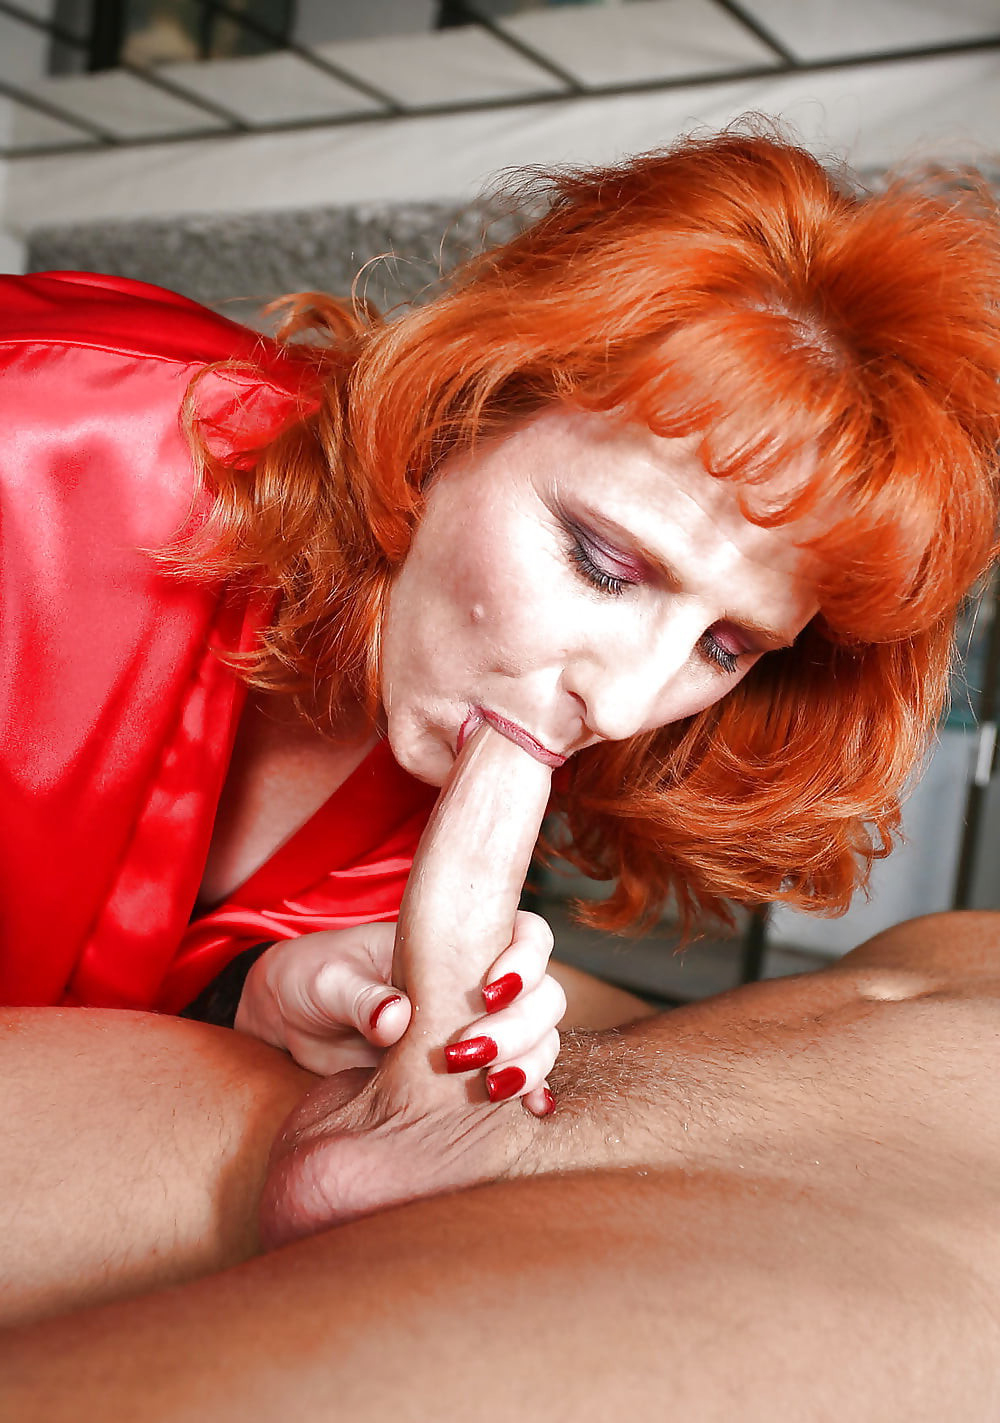 very pity me, who is the red head pornstar what words..., magnificent idea